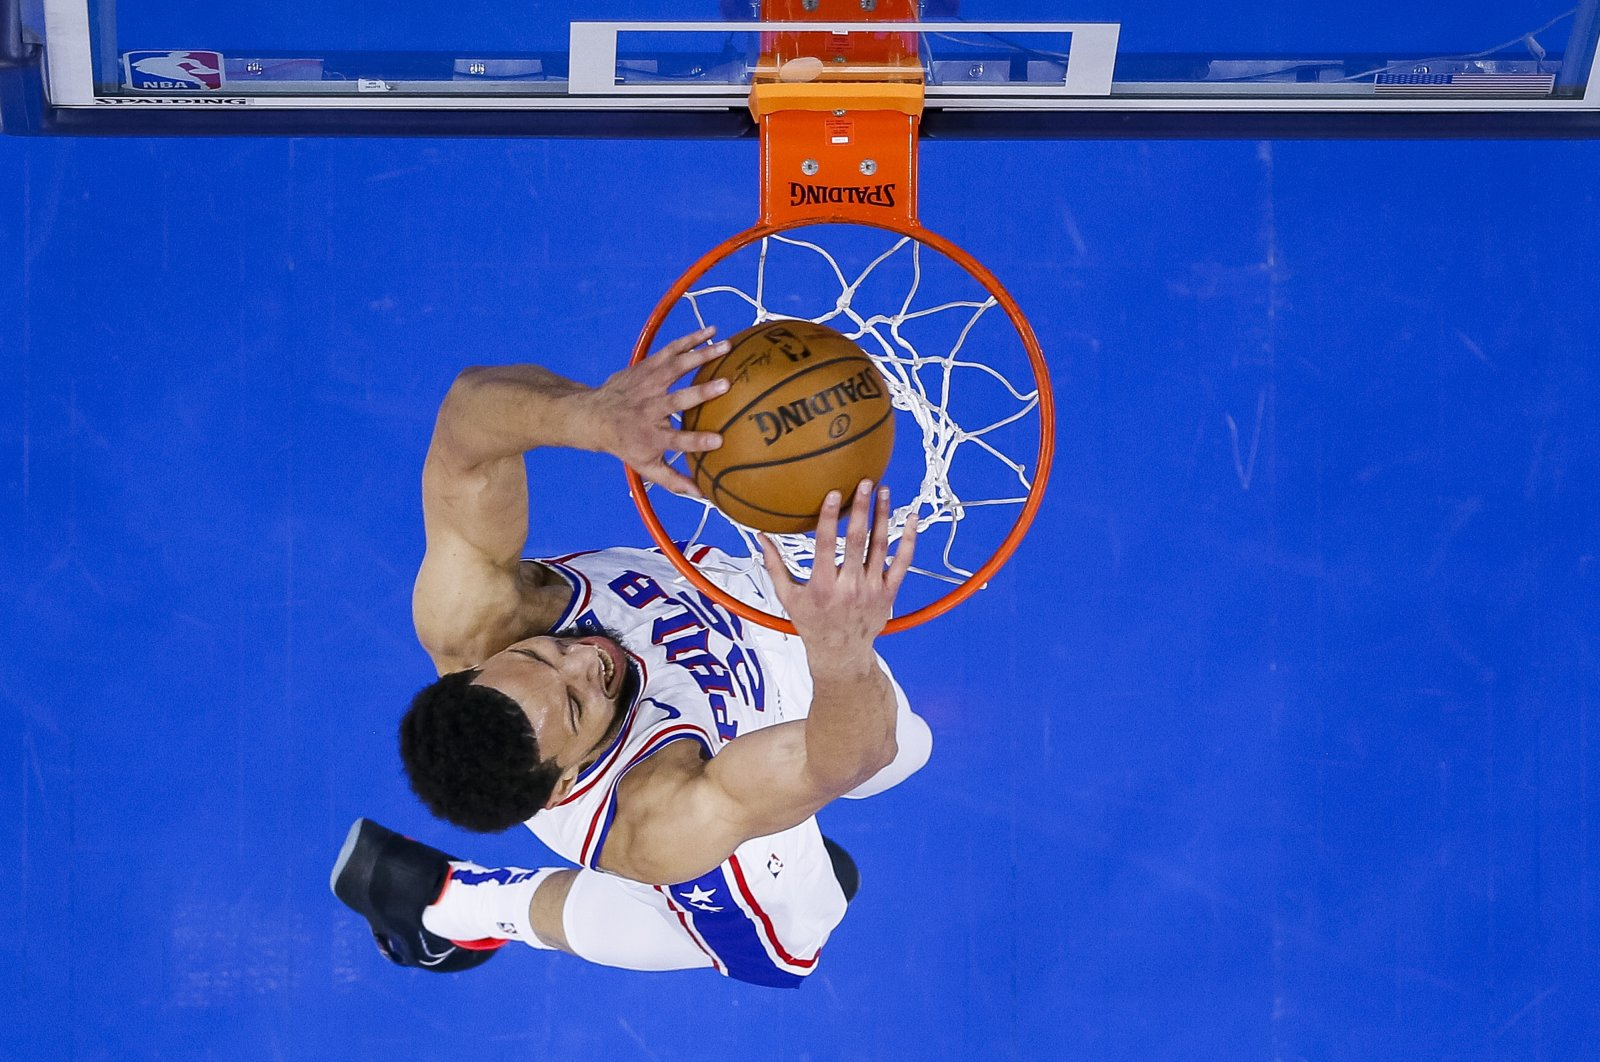 Philadelphia 76ers' Ben Simmons dunks during the first half of an NBA basketball game against the Minnesota Timberwolves, in Philadelphia, U.S., April 3, 2021. (AP Photo)